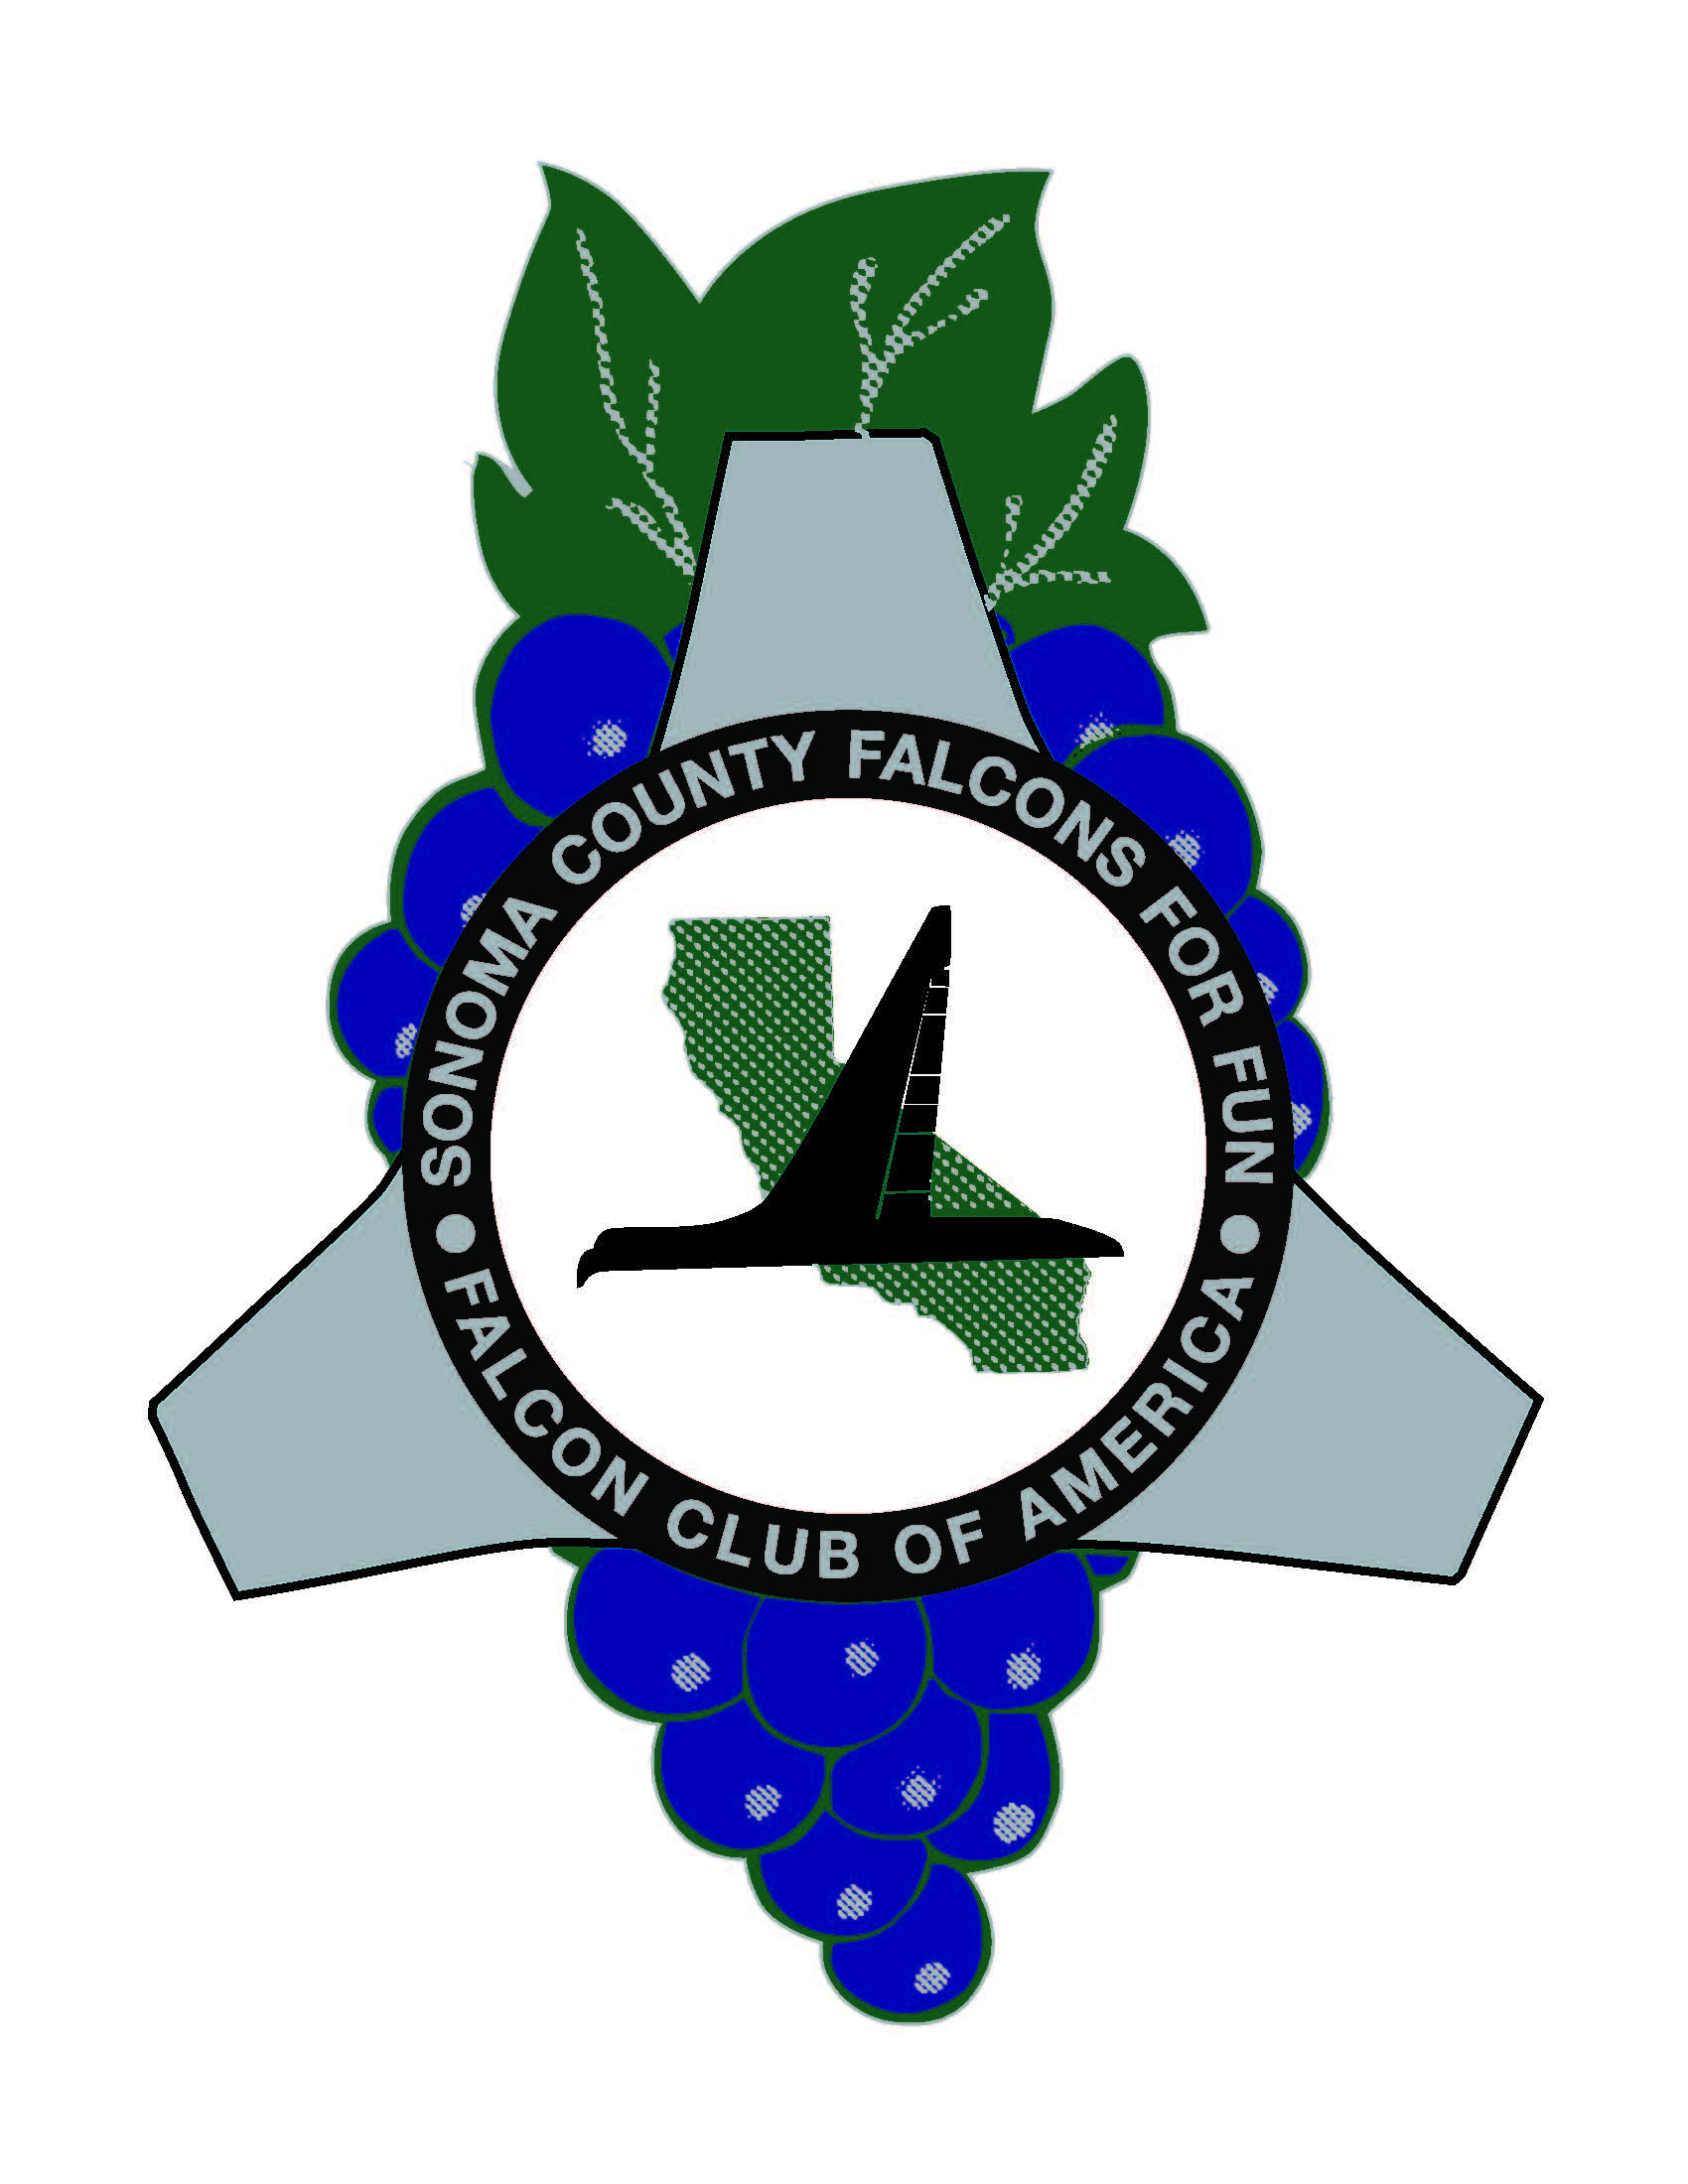 Sonoma County Falcons for Fun! CLub Logo